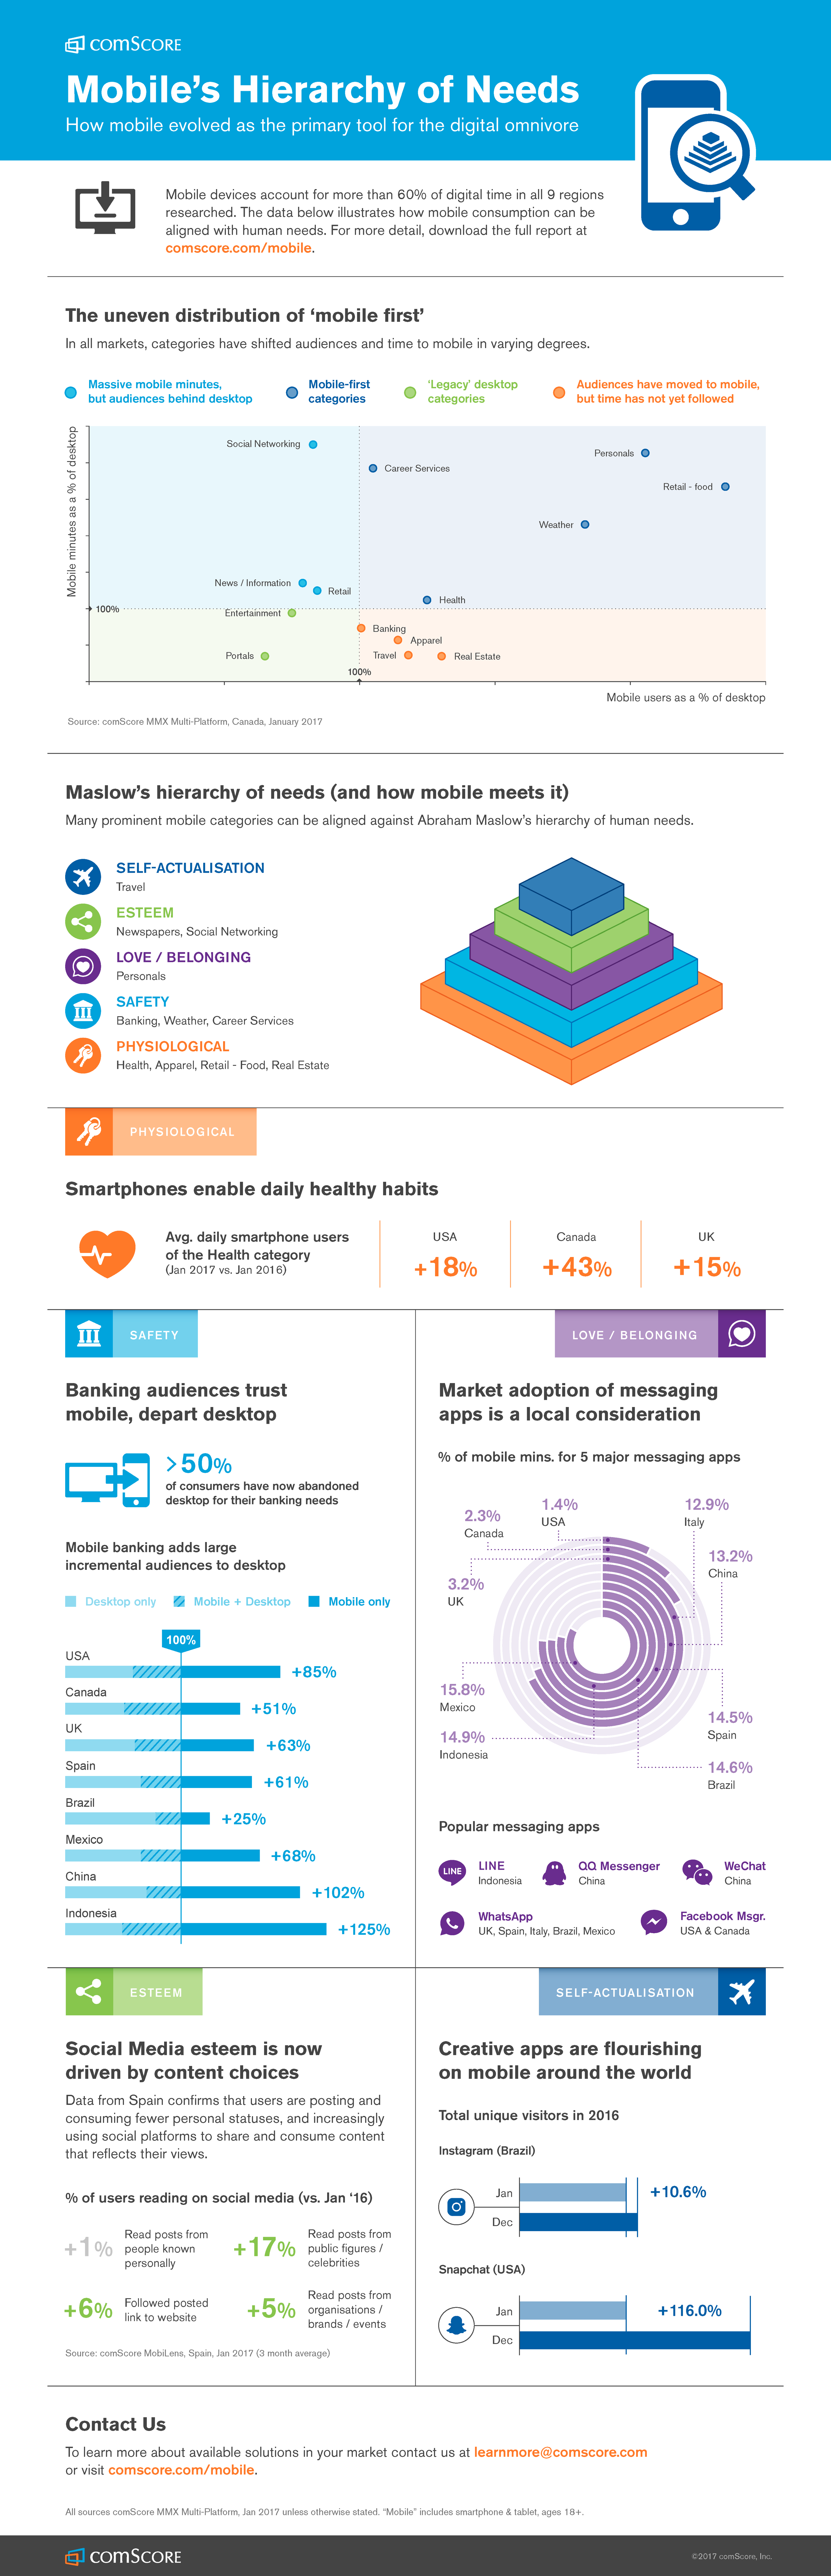 Mobile's hierarchy of needs [infographic]